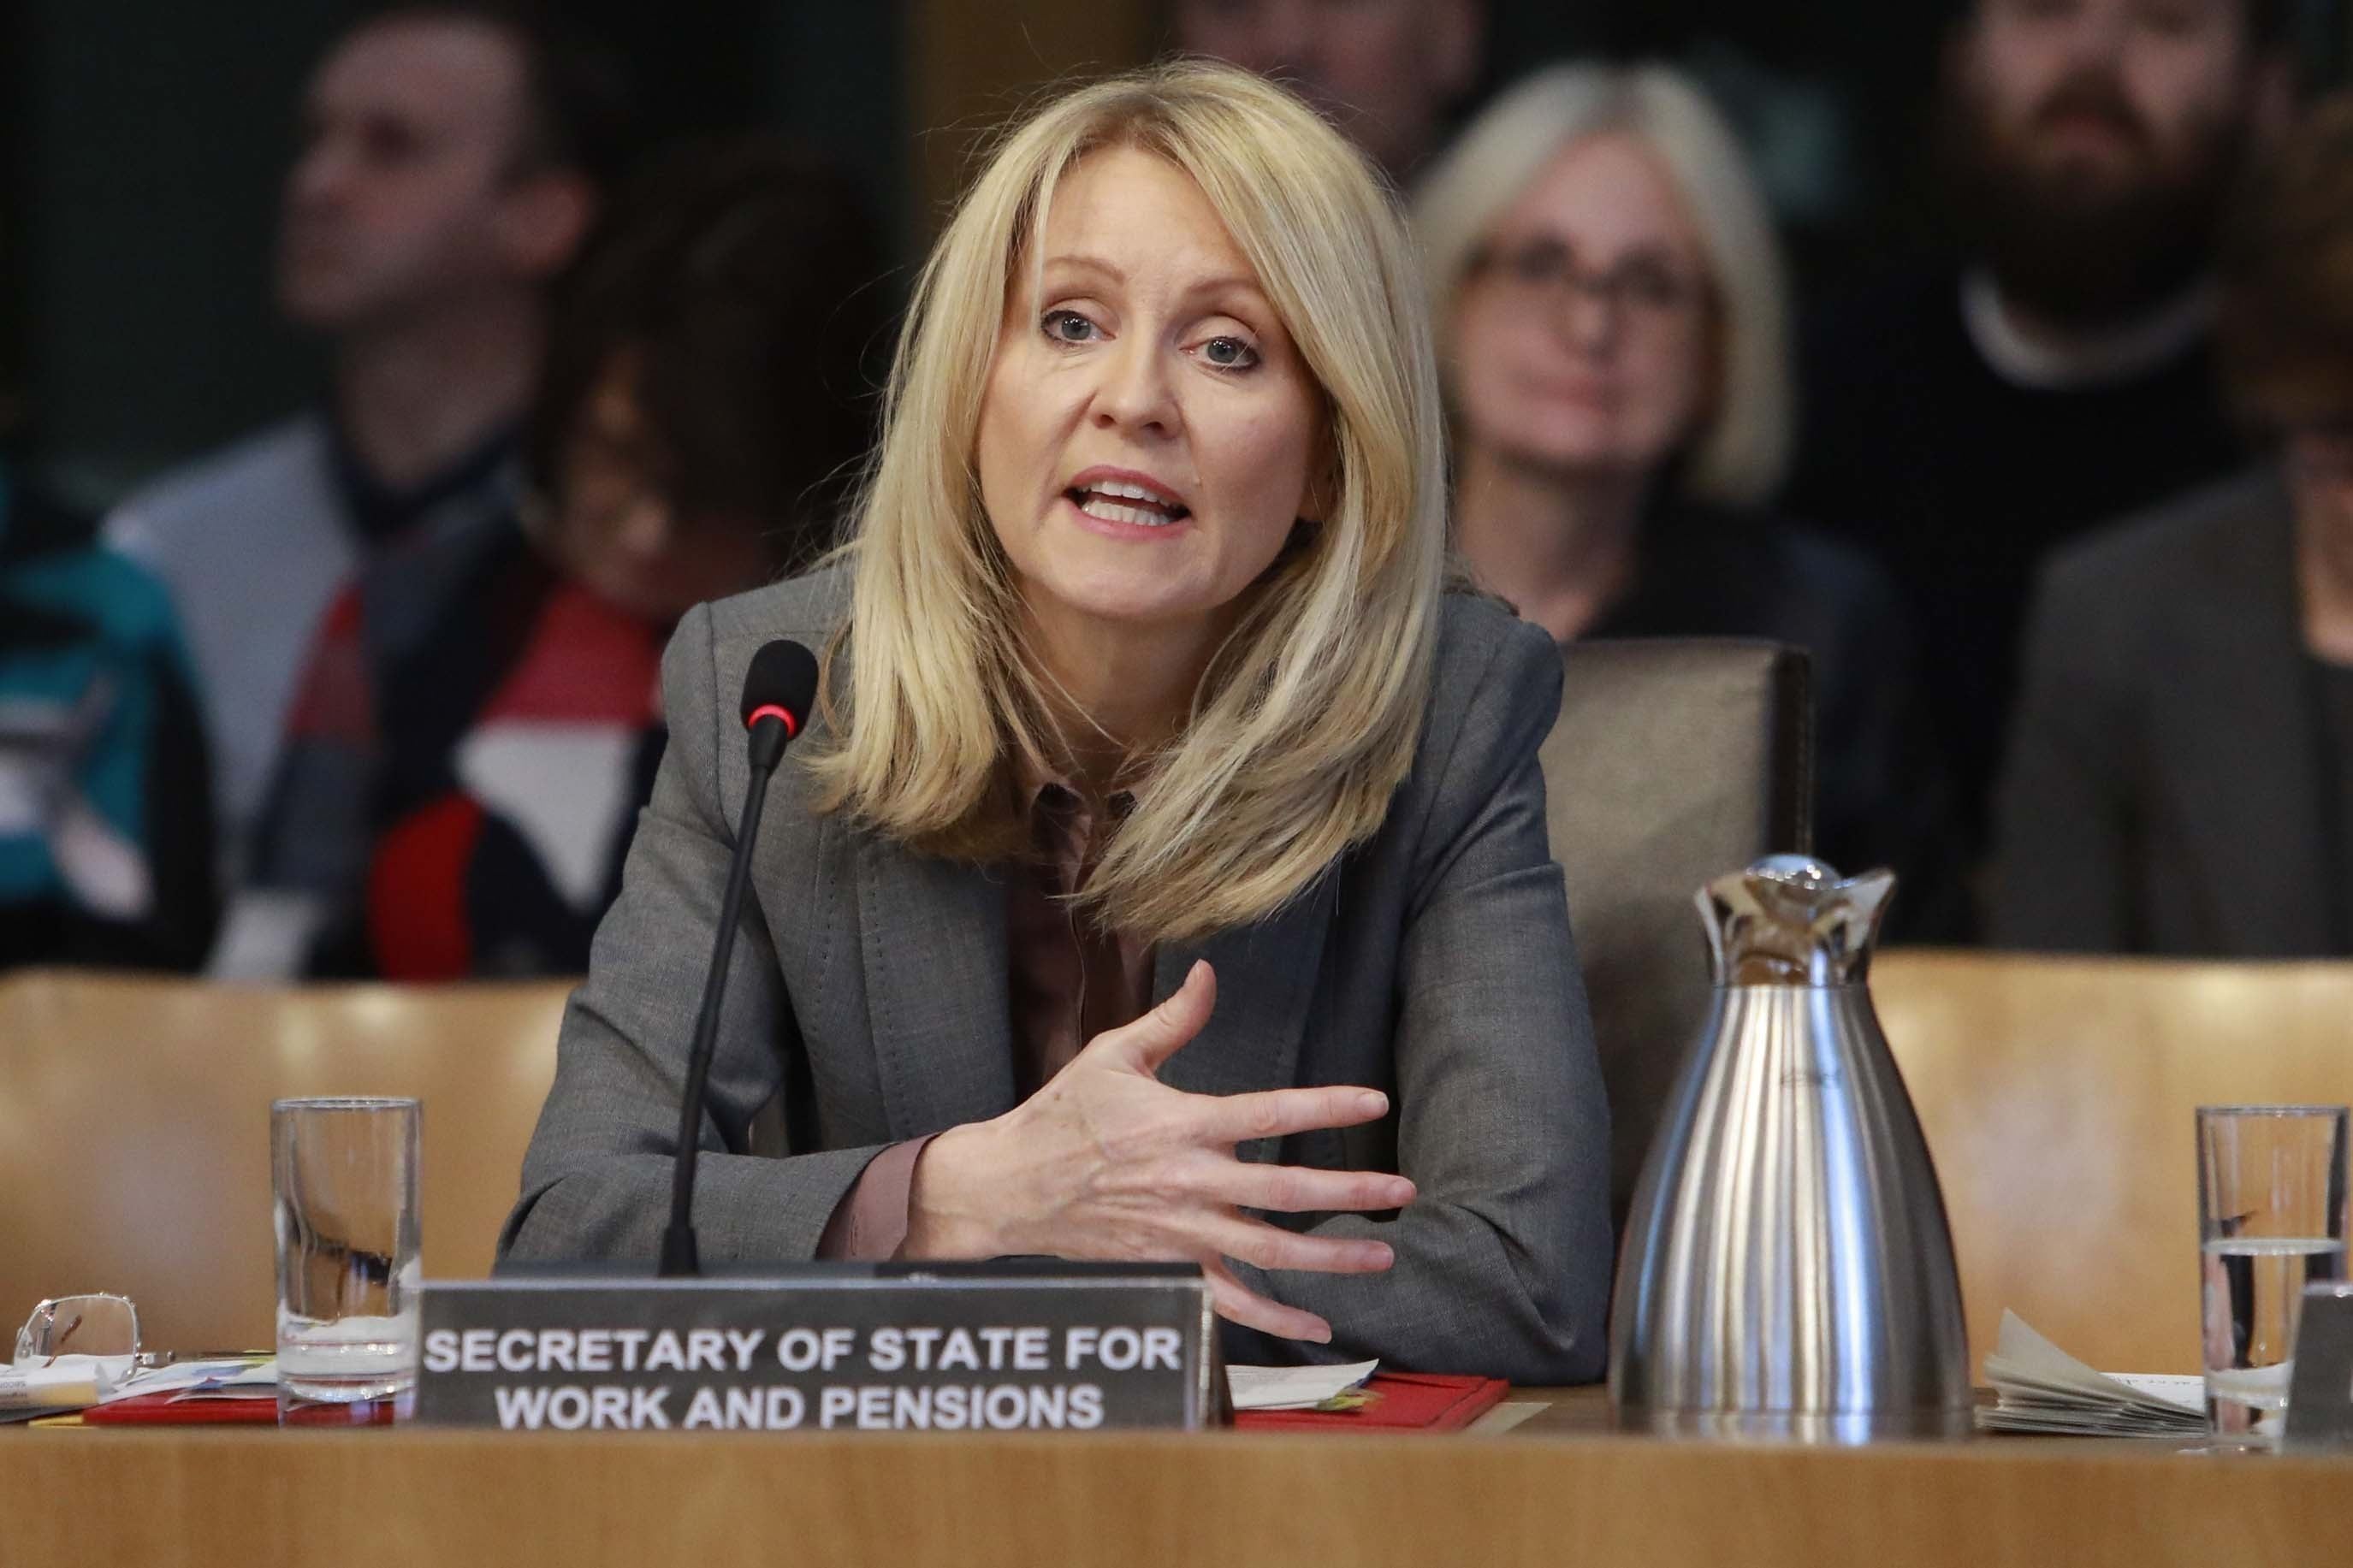 Esther McVey was heckled by members of the public in a Holyrood committee meeting (Andrew Cowan/Scottish Parliament/PA)